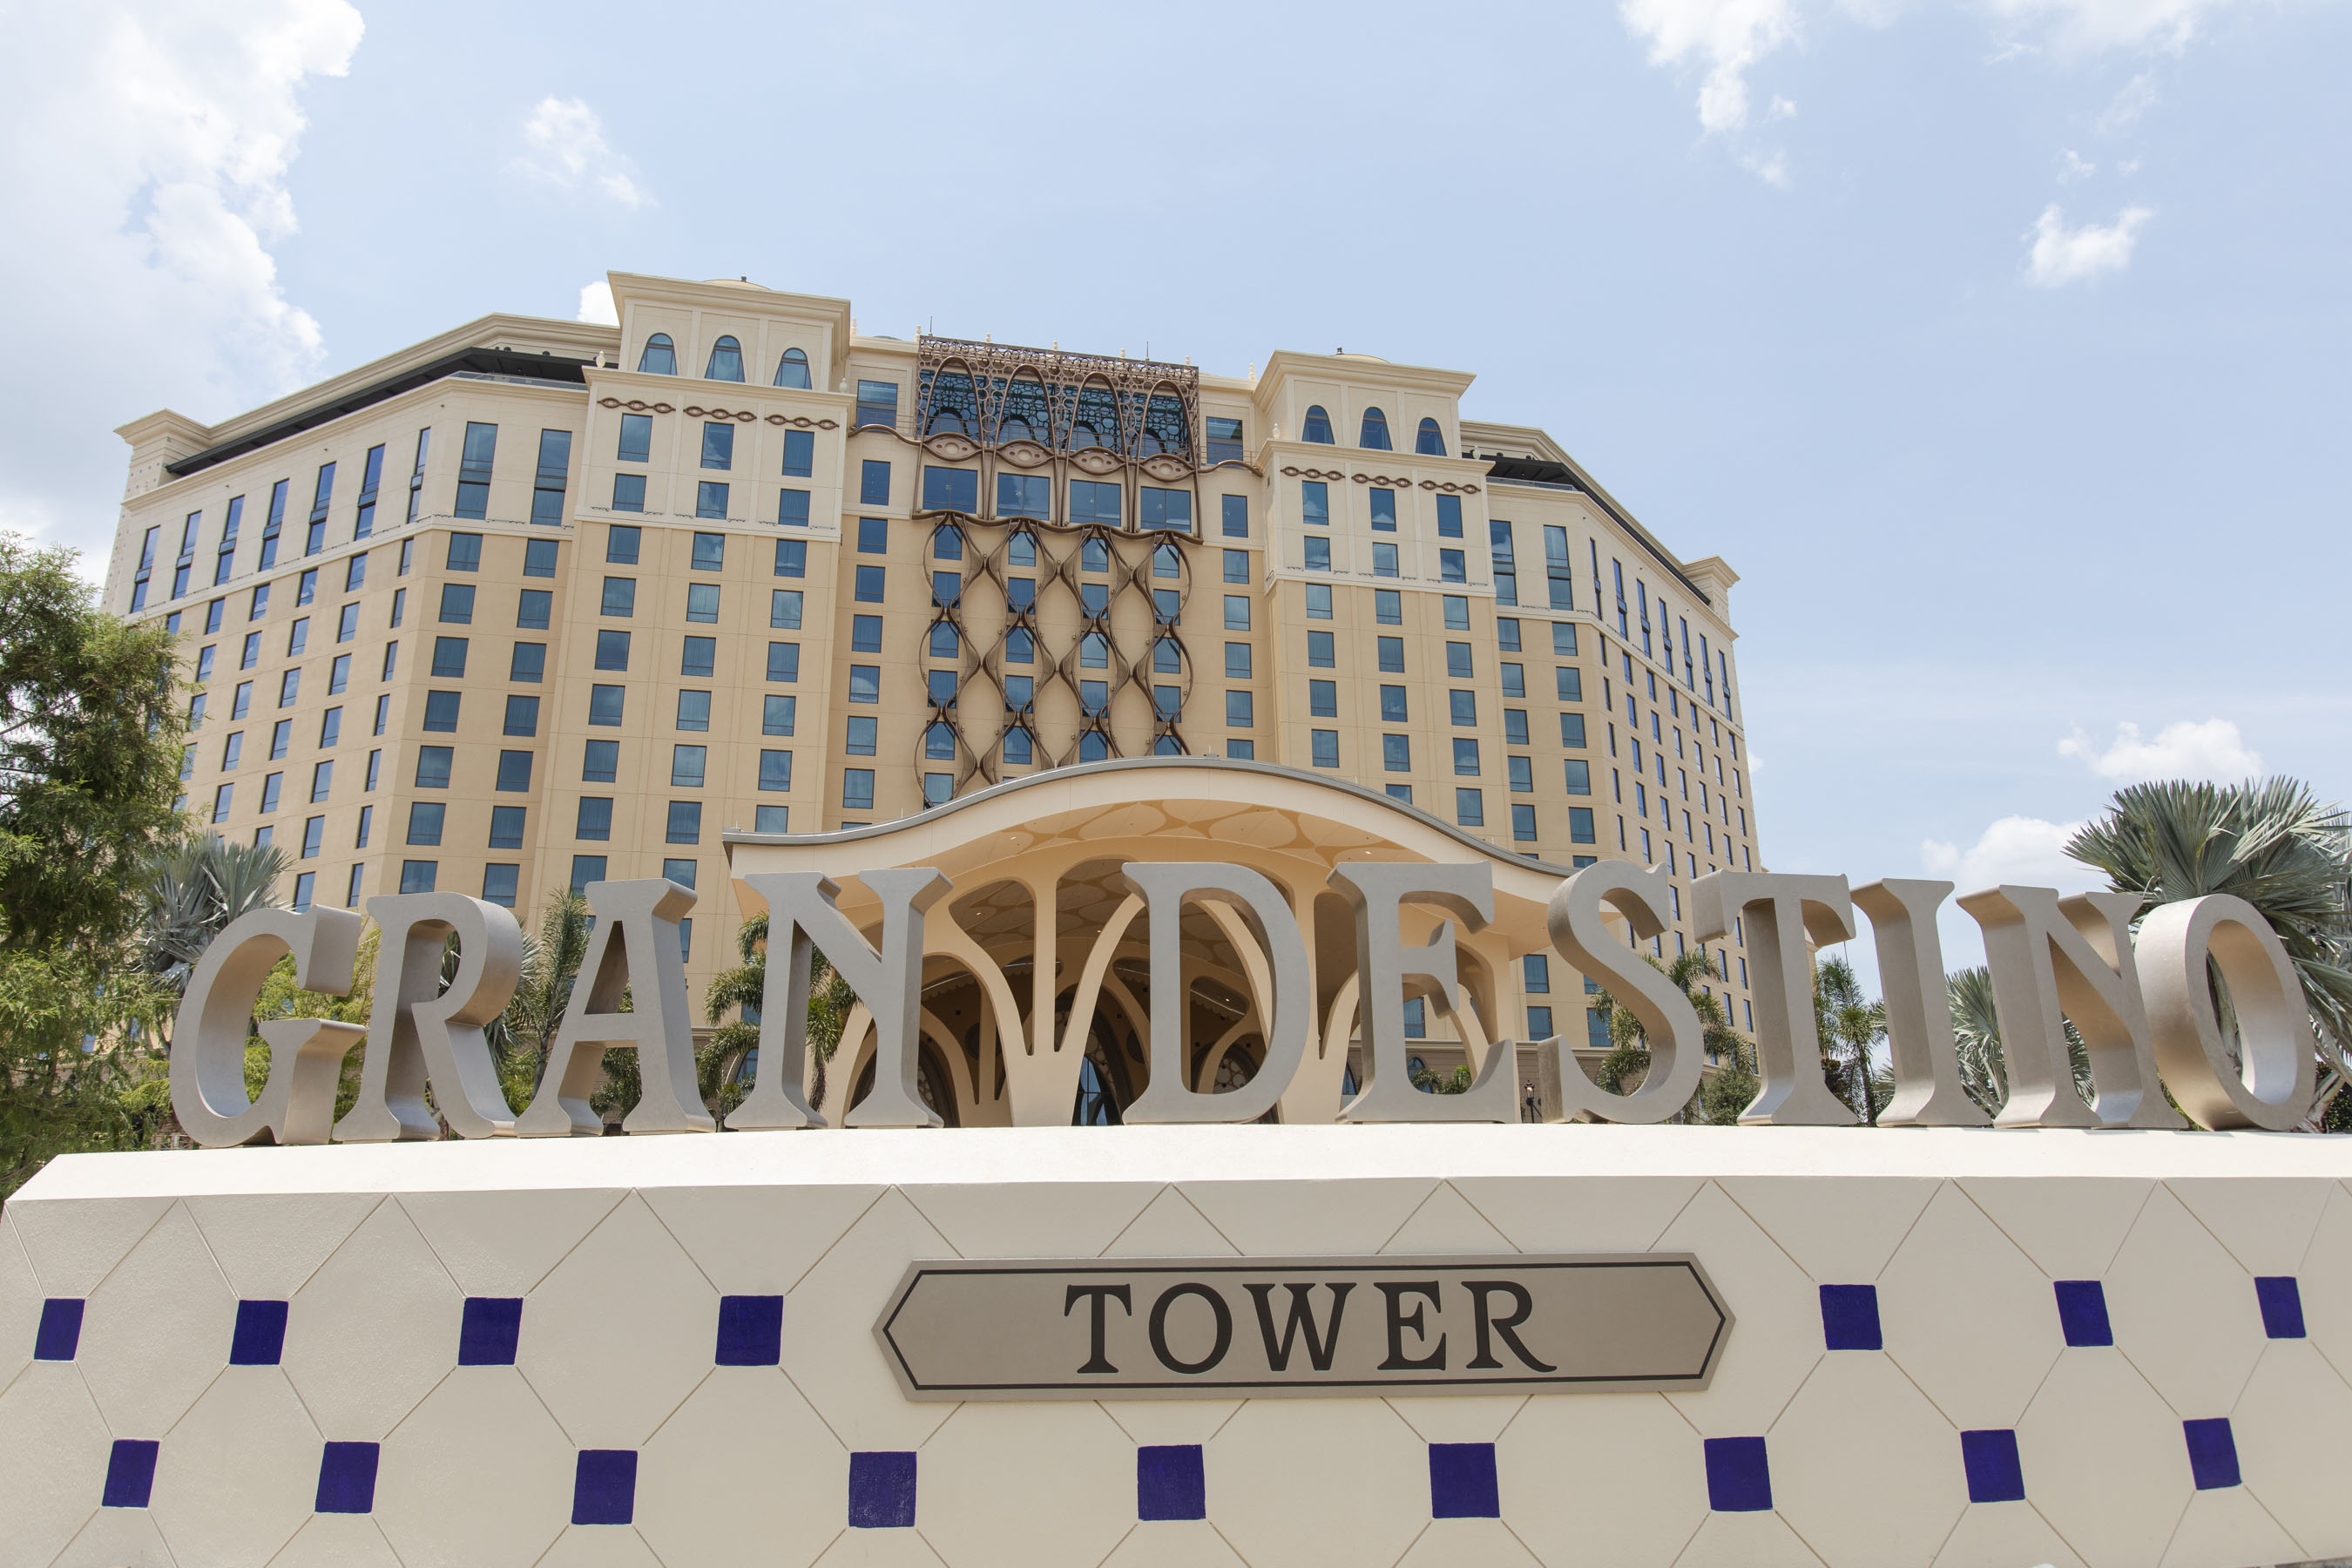 Gran Destino Tower lobby and guest rooms